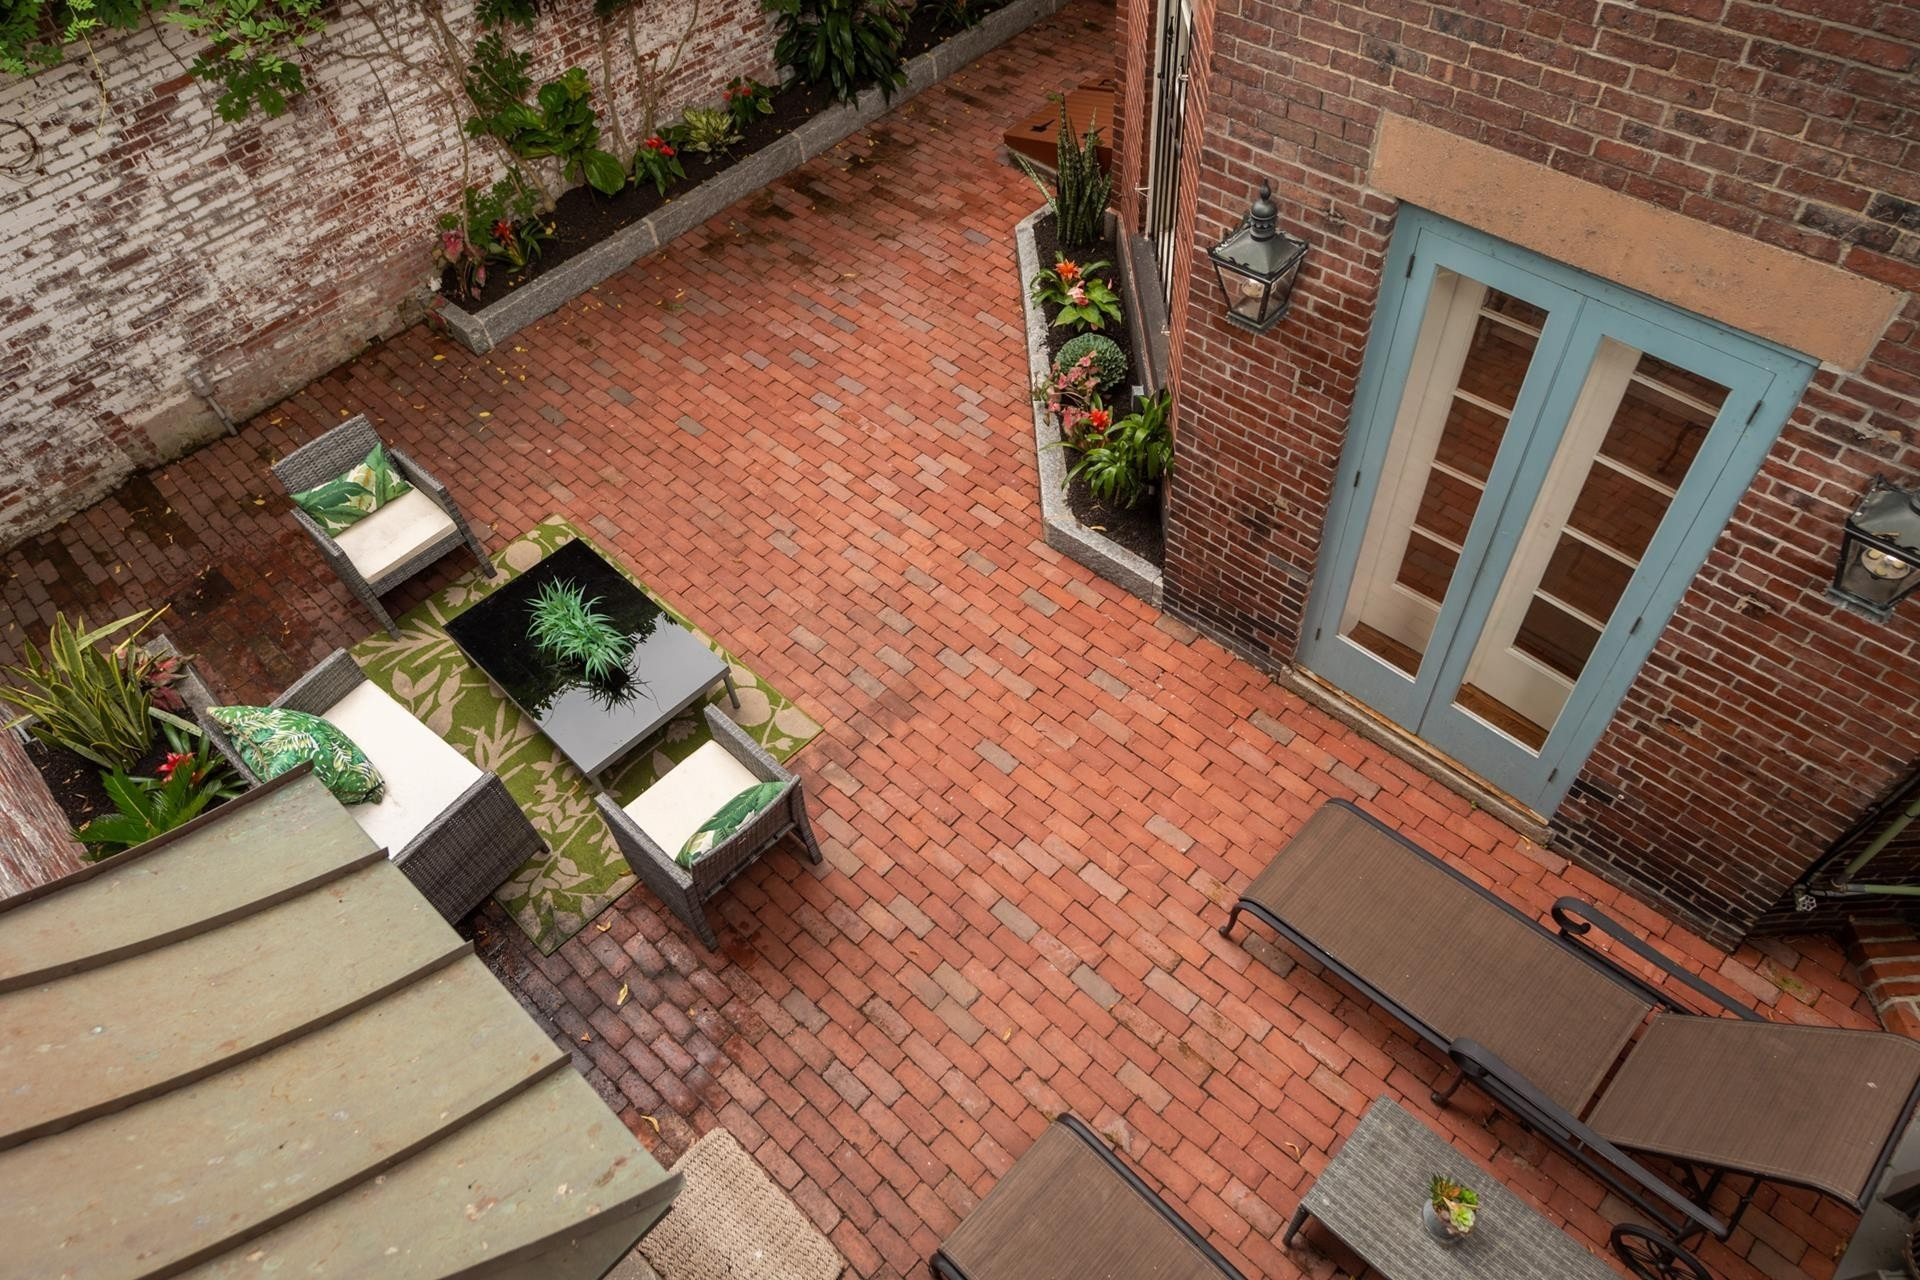 2. Condominiums for Sale at 20 Chestnut Street , 1 Beacon Hill, Boston, MA 02108